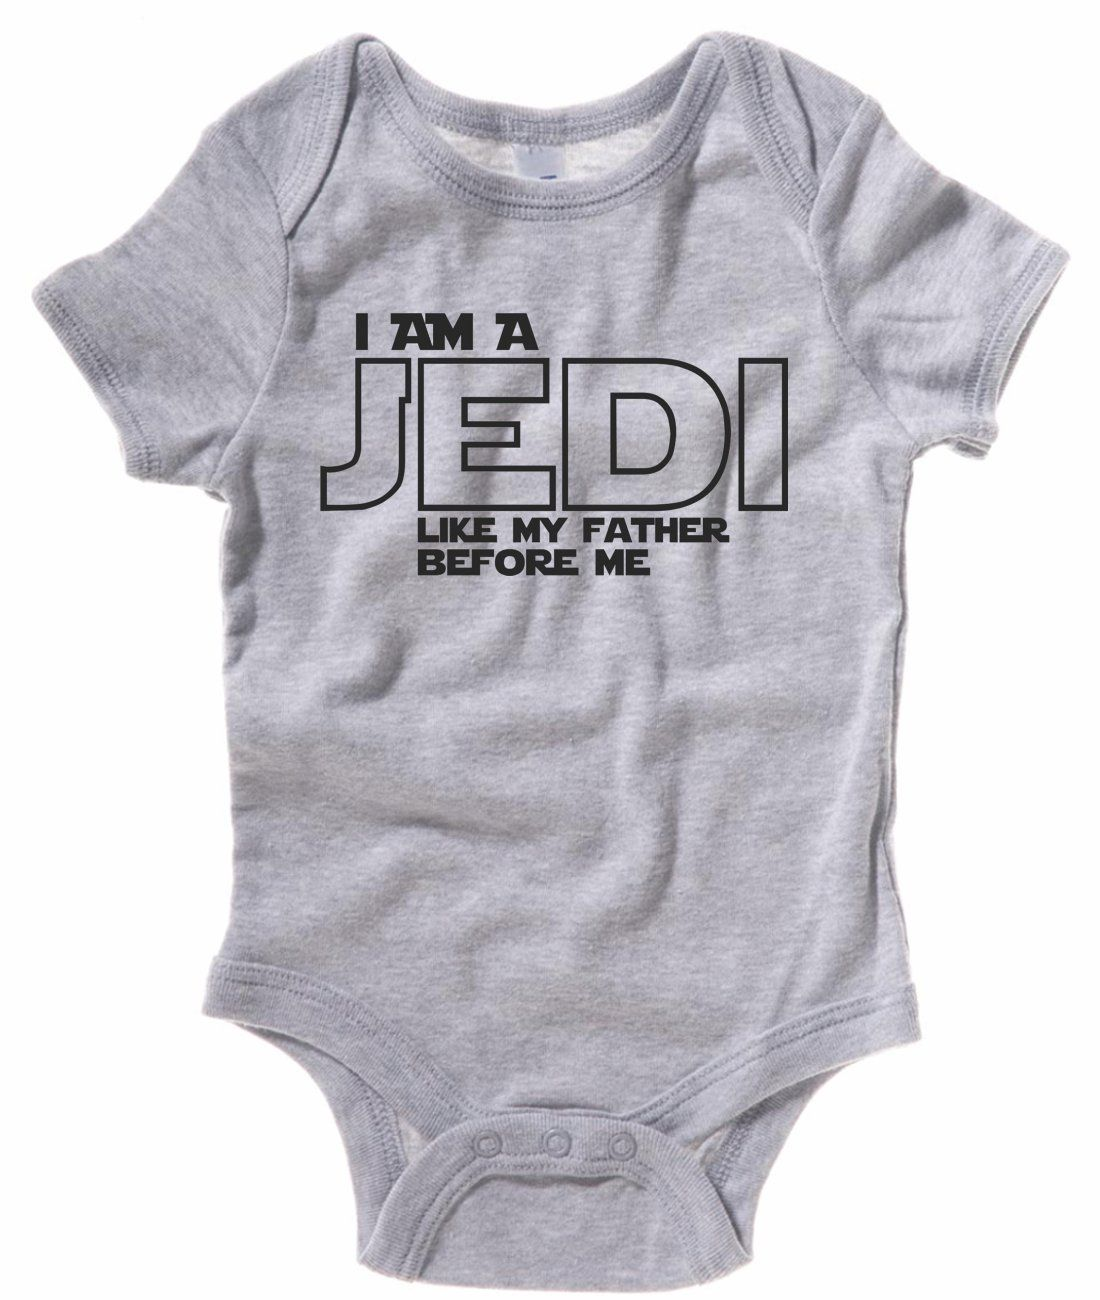 Baby Clothes Near Me Impressive Amazon I'm A Jedi Like My Father Before Me Baby One Piece Star Review